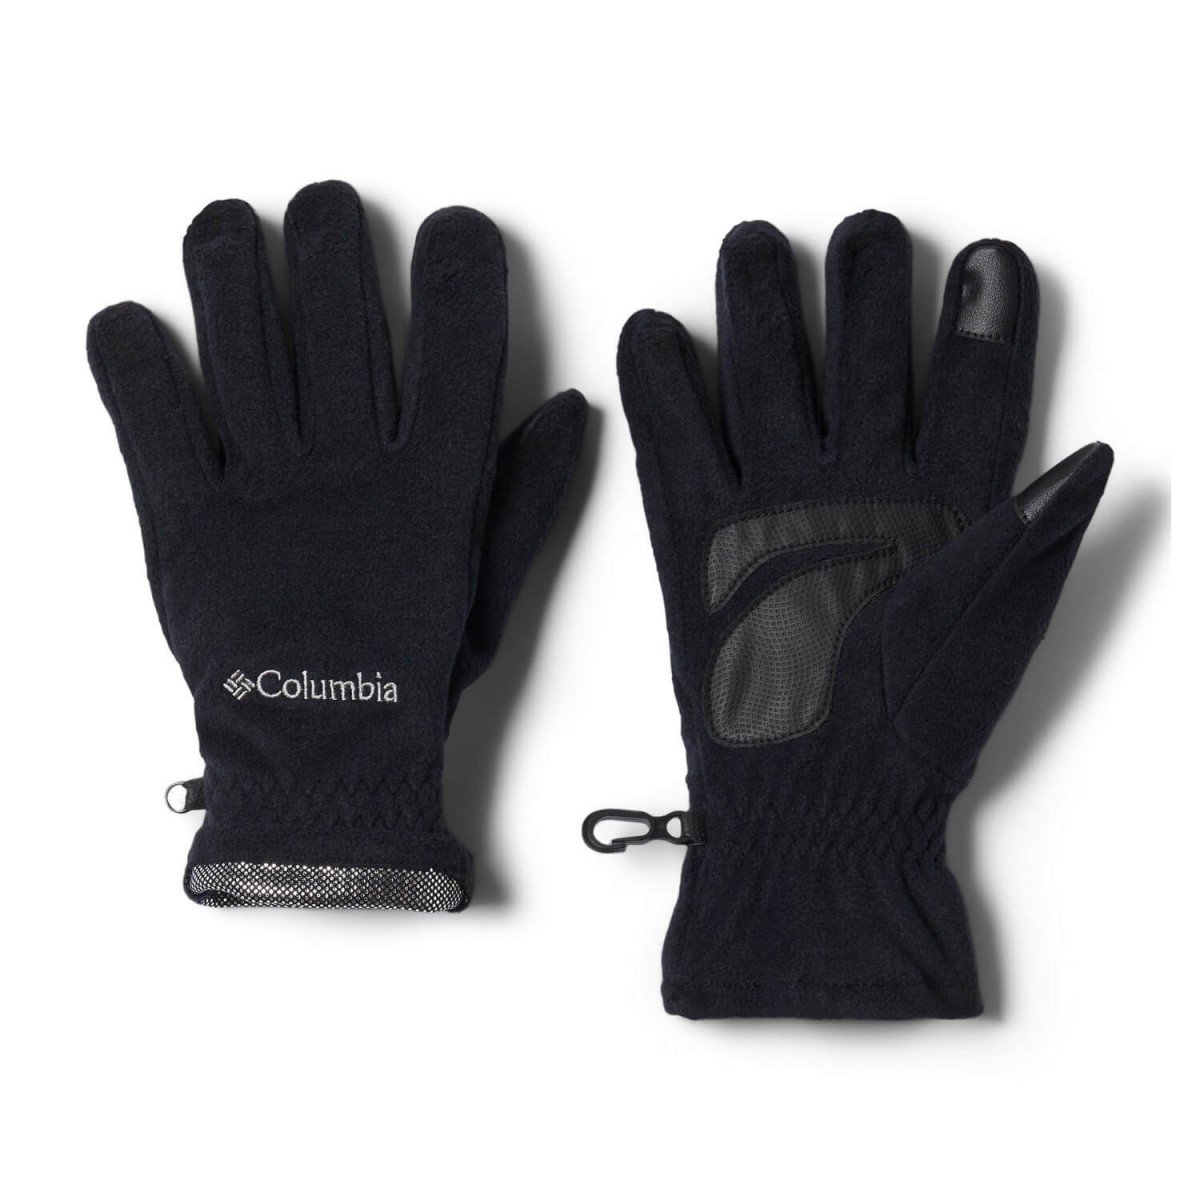 Mai multe damă Outdoor Columbia W Thermarator Glove Negre -2